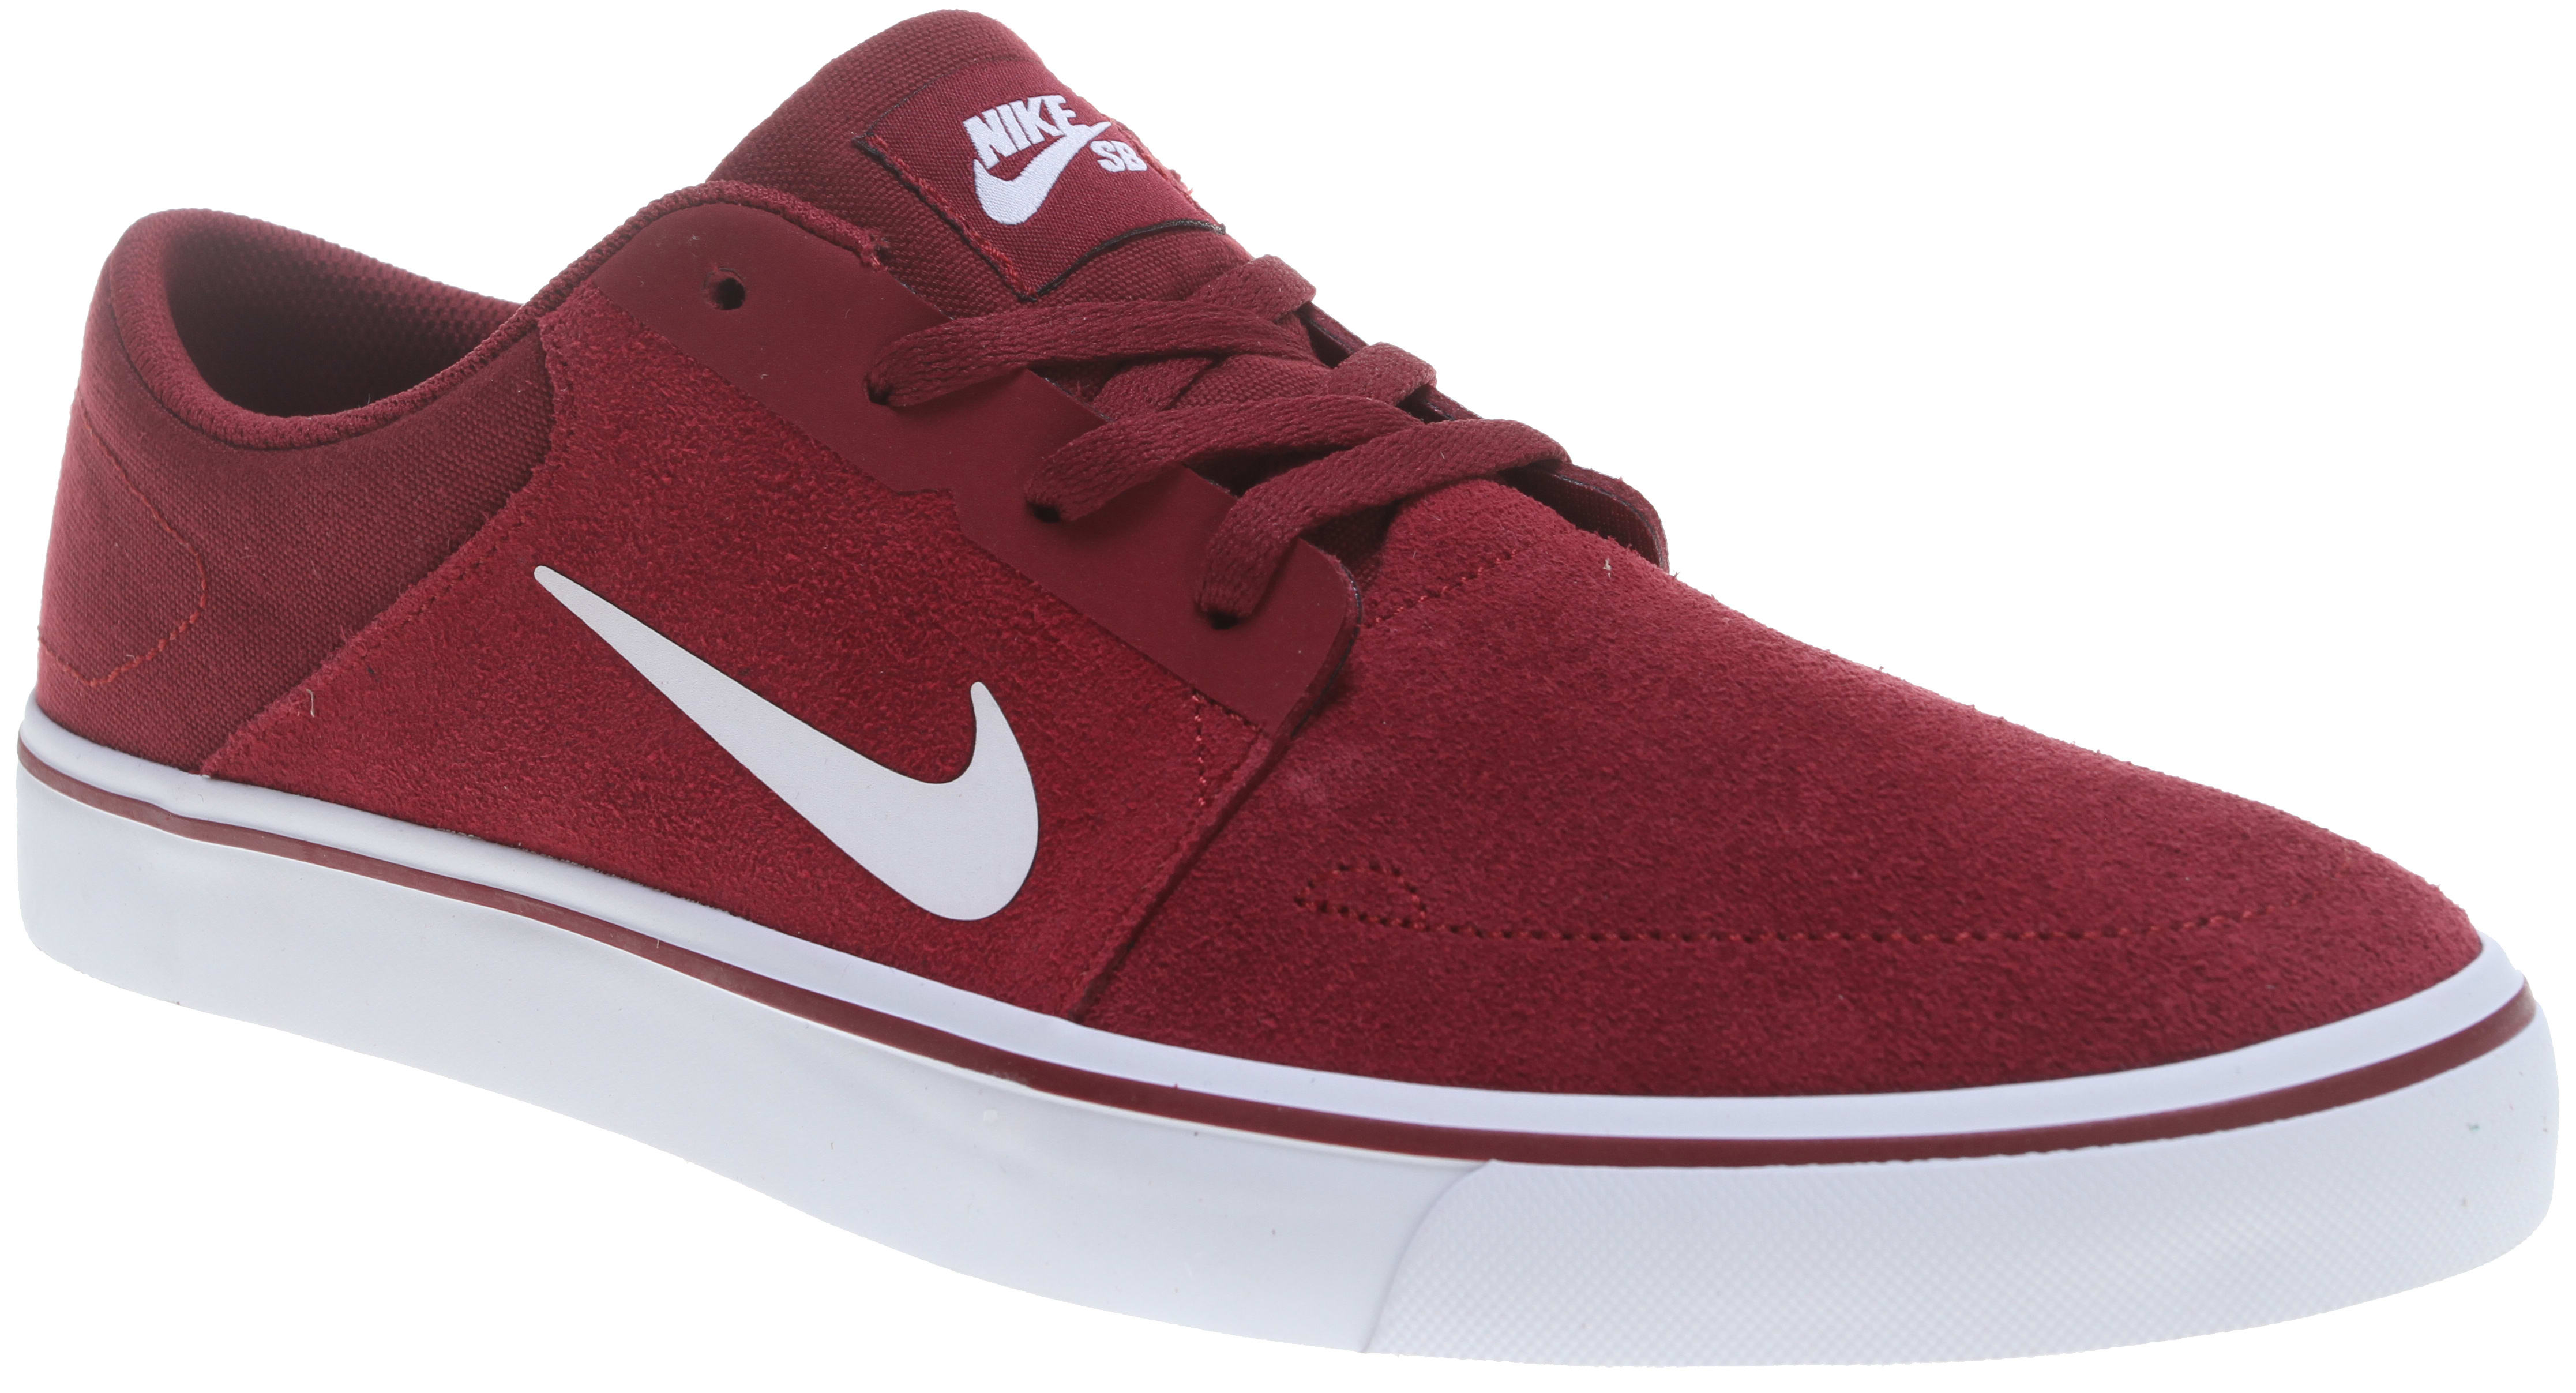 Nike Sb Portmore Men S Shoes Nike Sb Portmore Men S Shoes